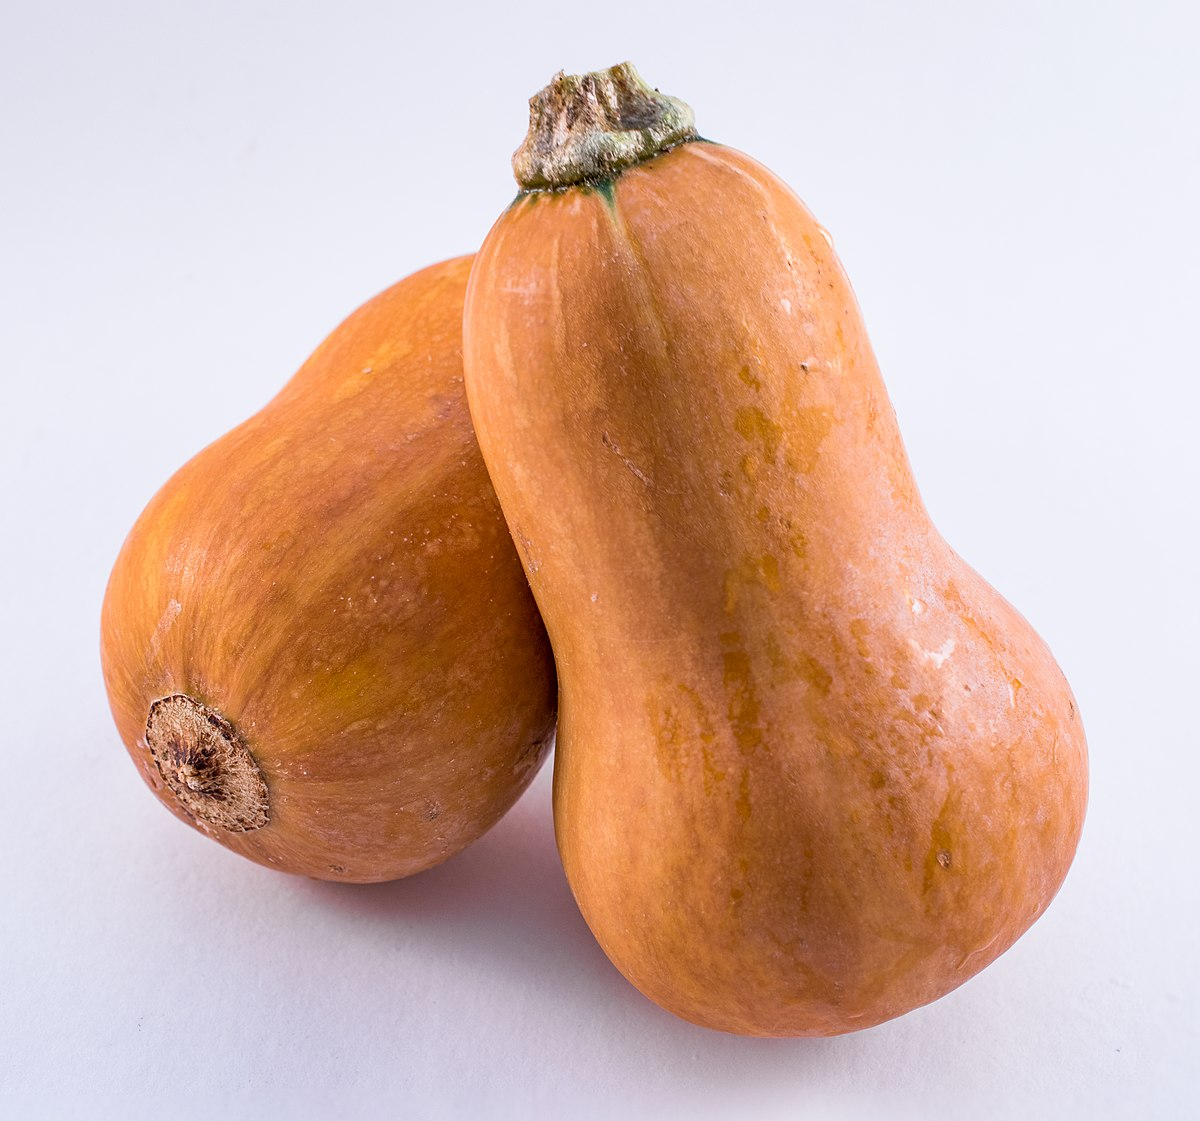 Honeynut Squash Wikipedia